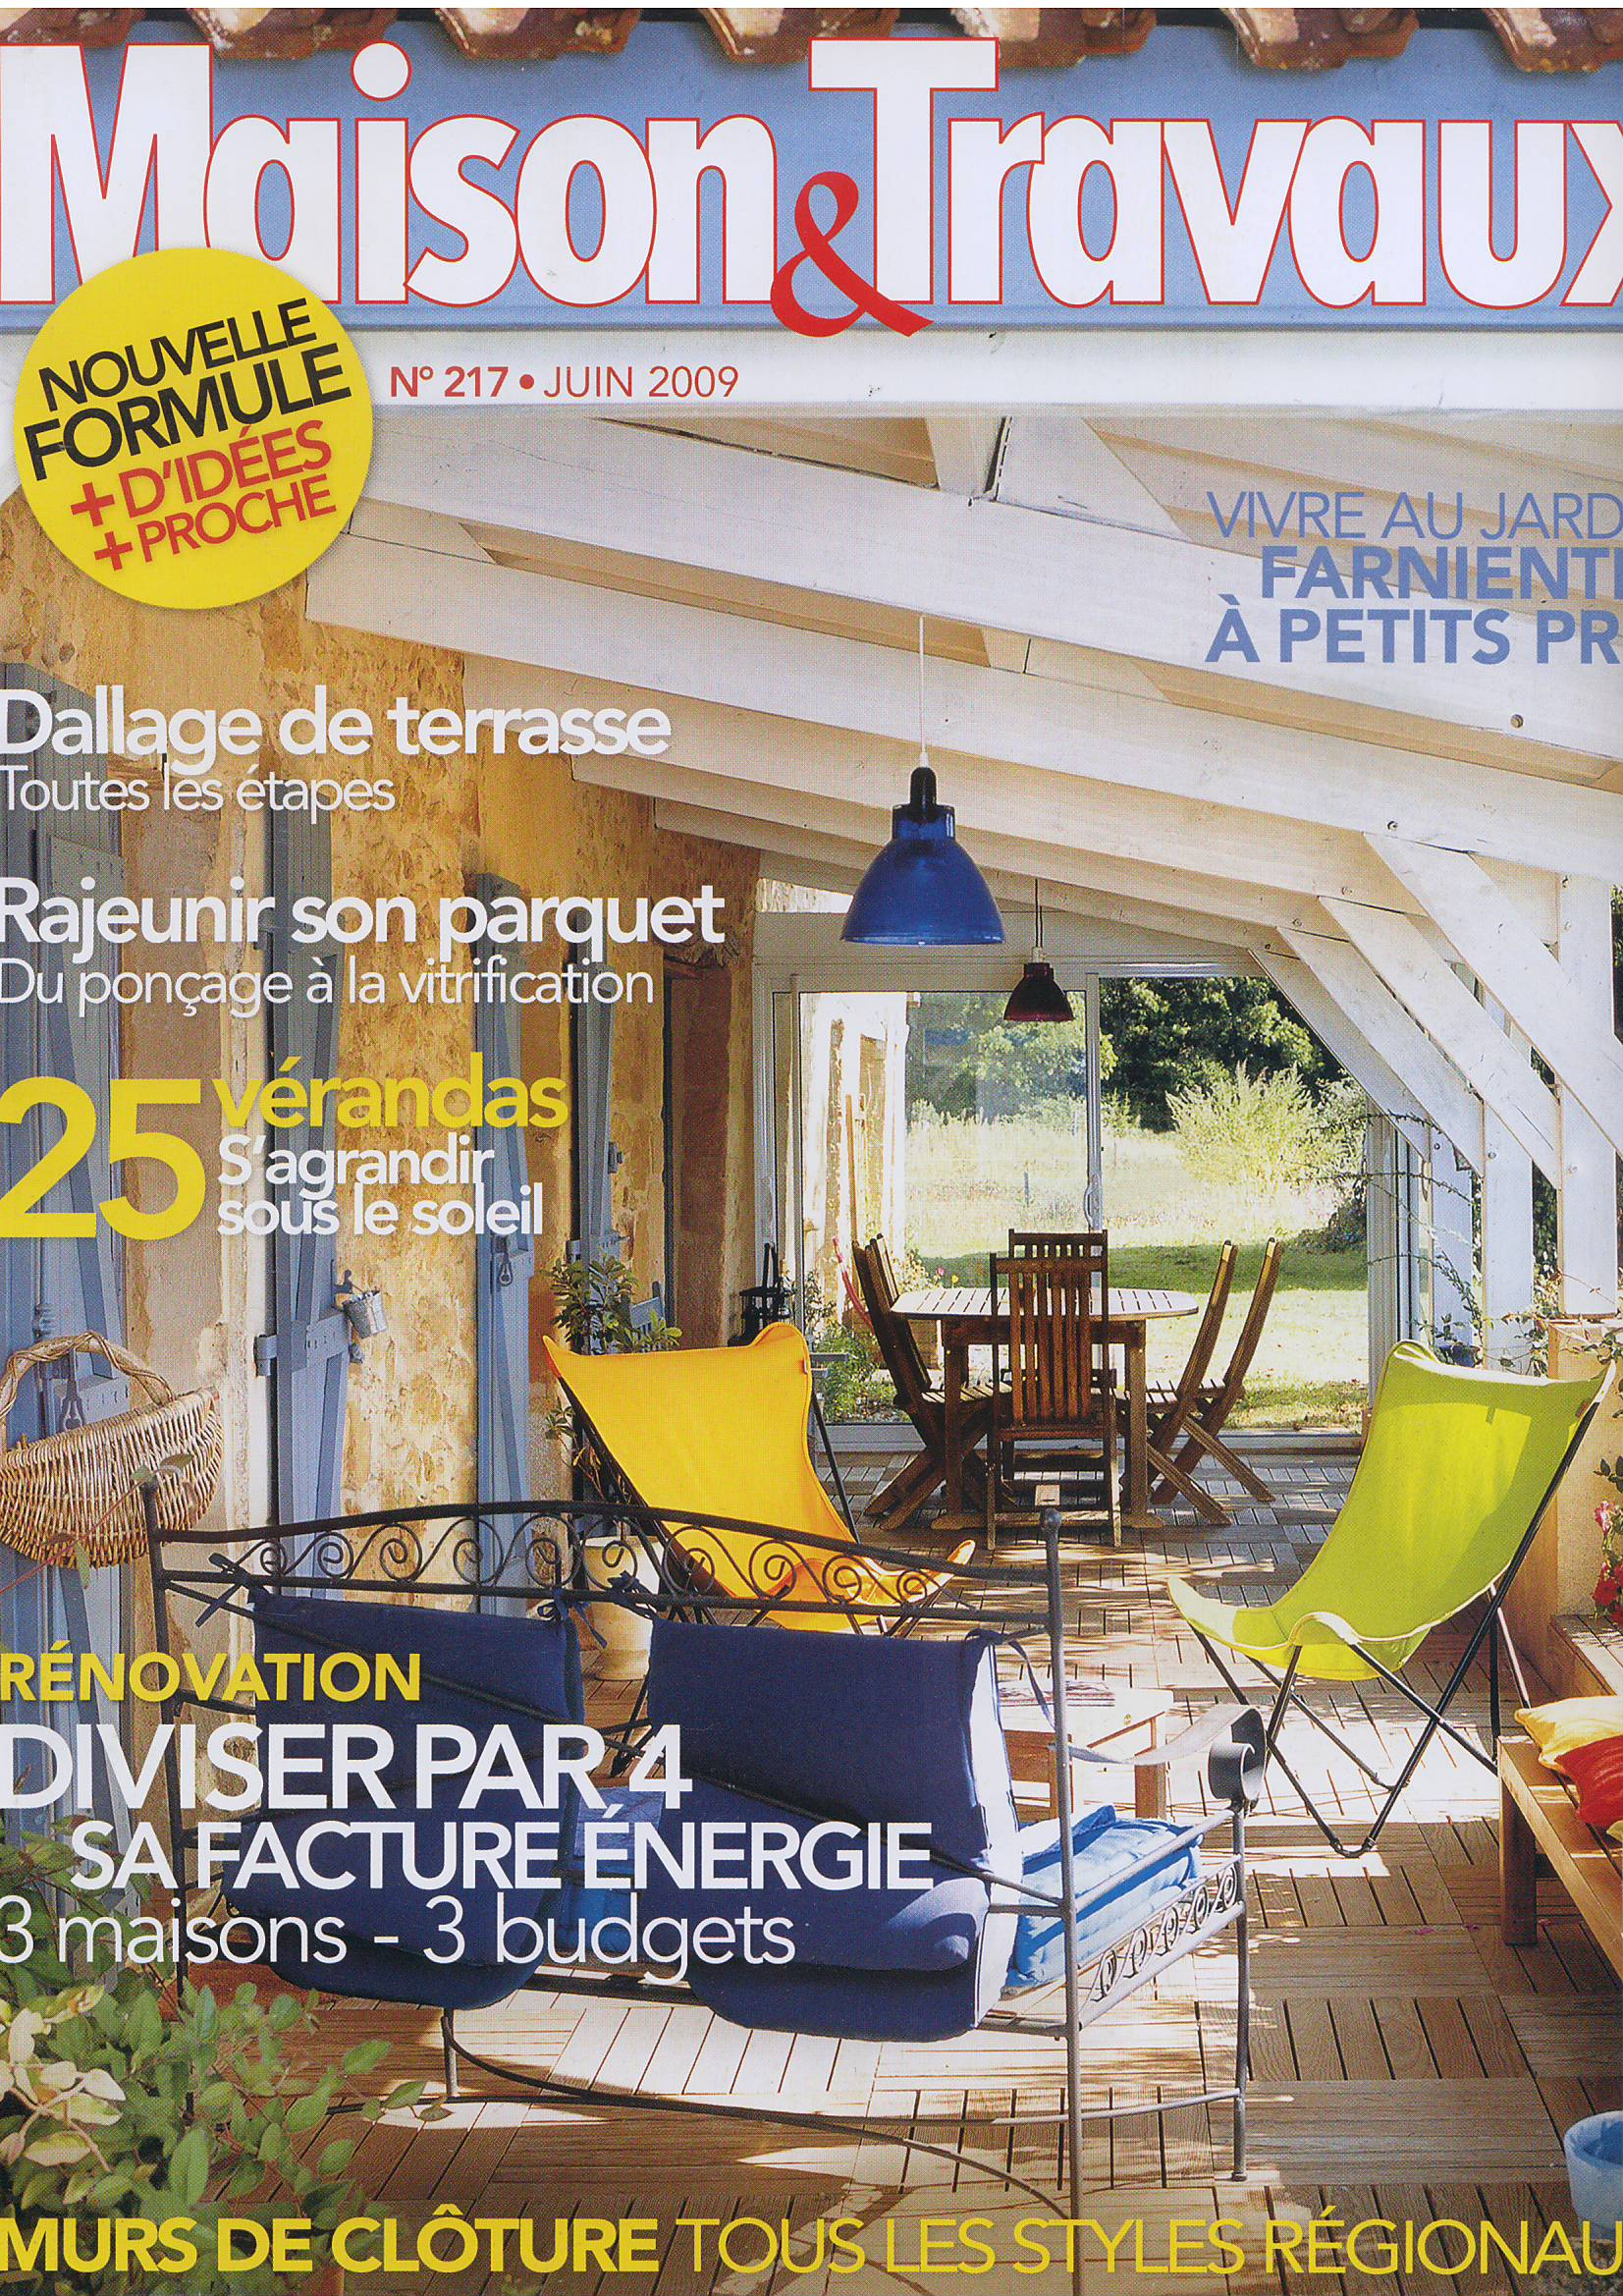 Magazine ma belle photo photos d art et de d coration for Art et decoration magazine feuilleter